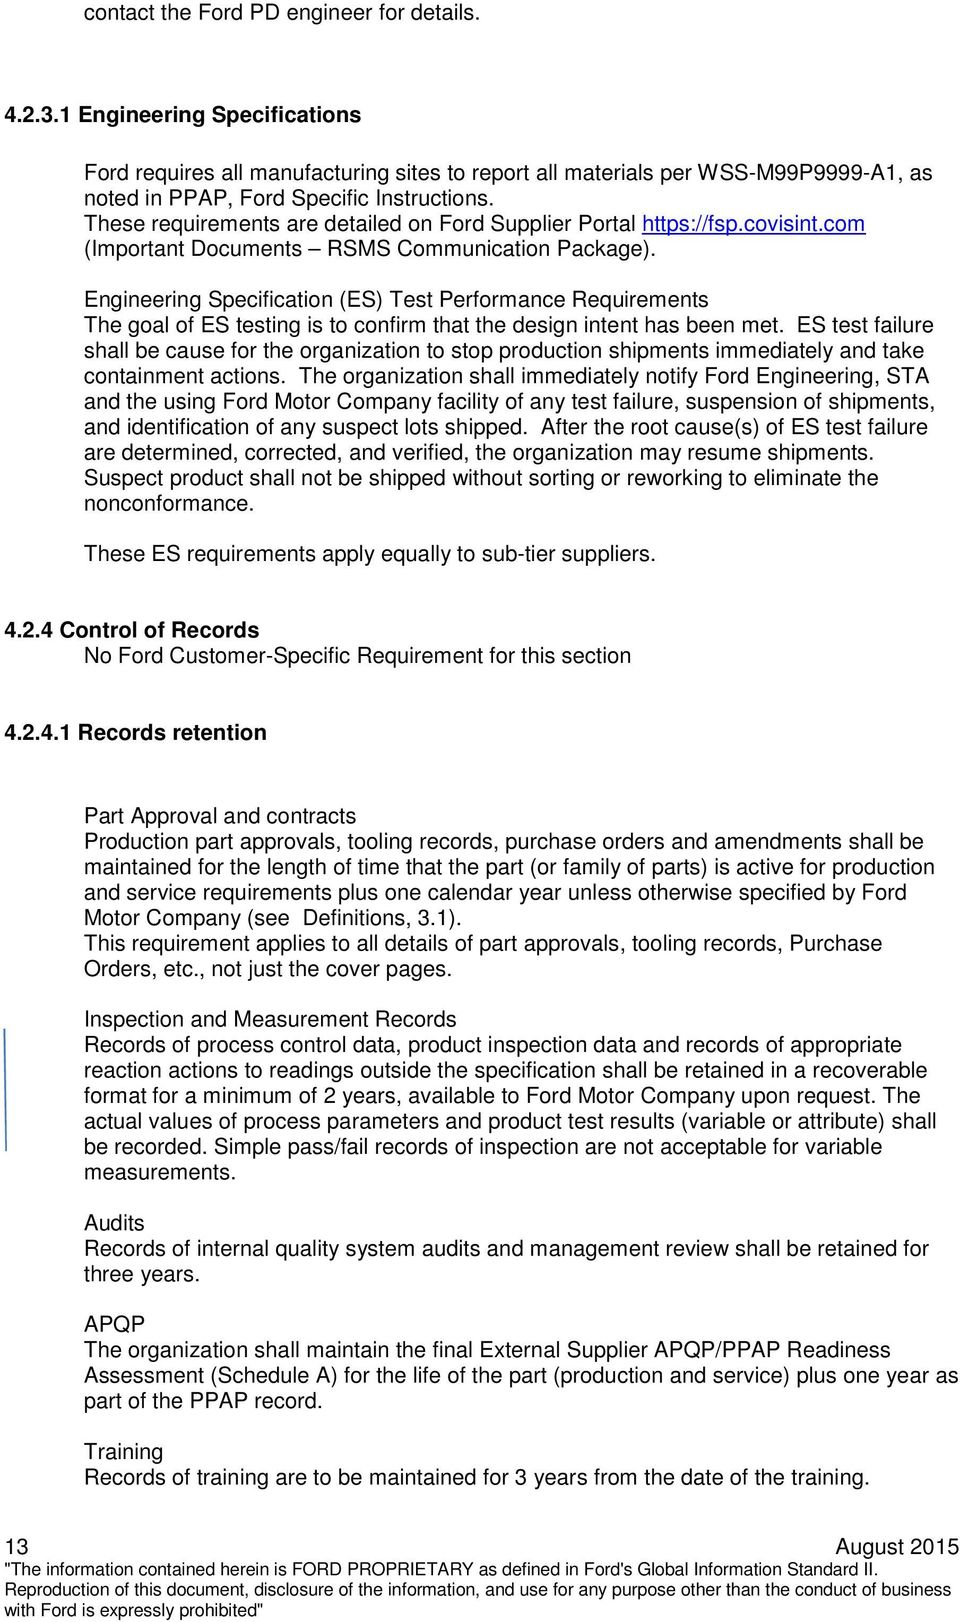 voip engineer cover letter commercial real estate appraiser cisco voip